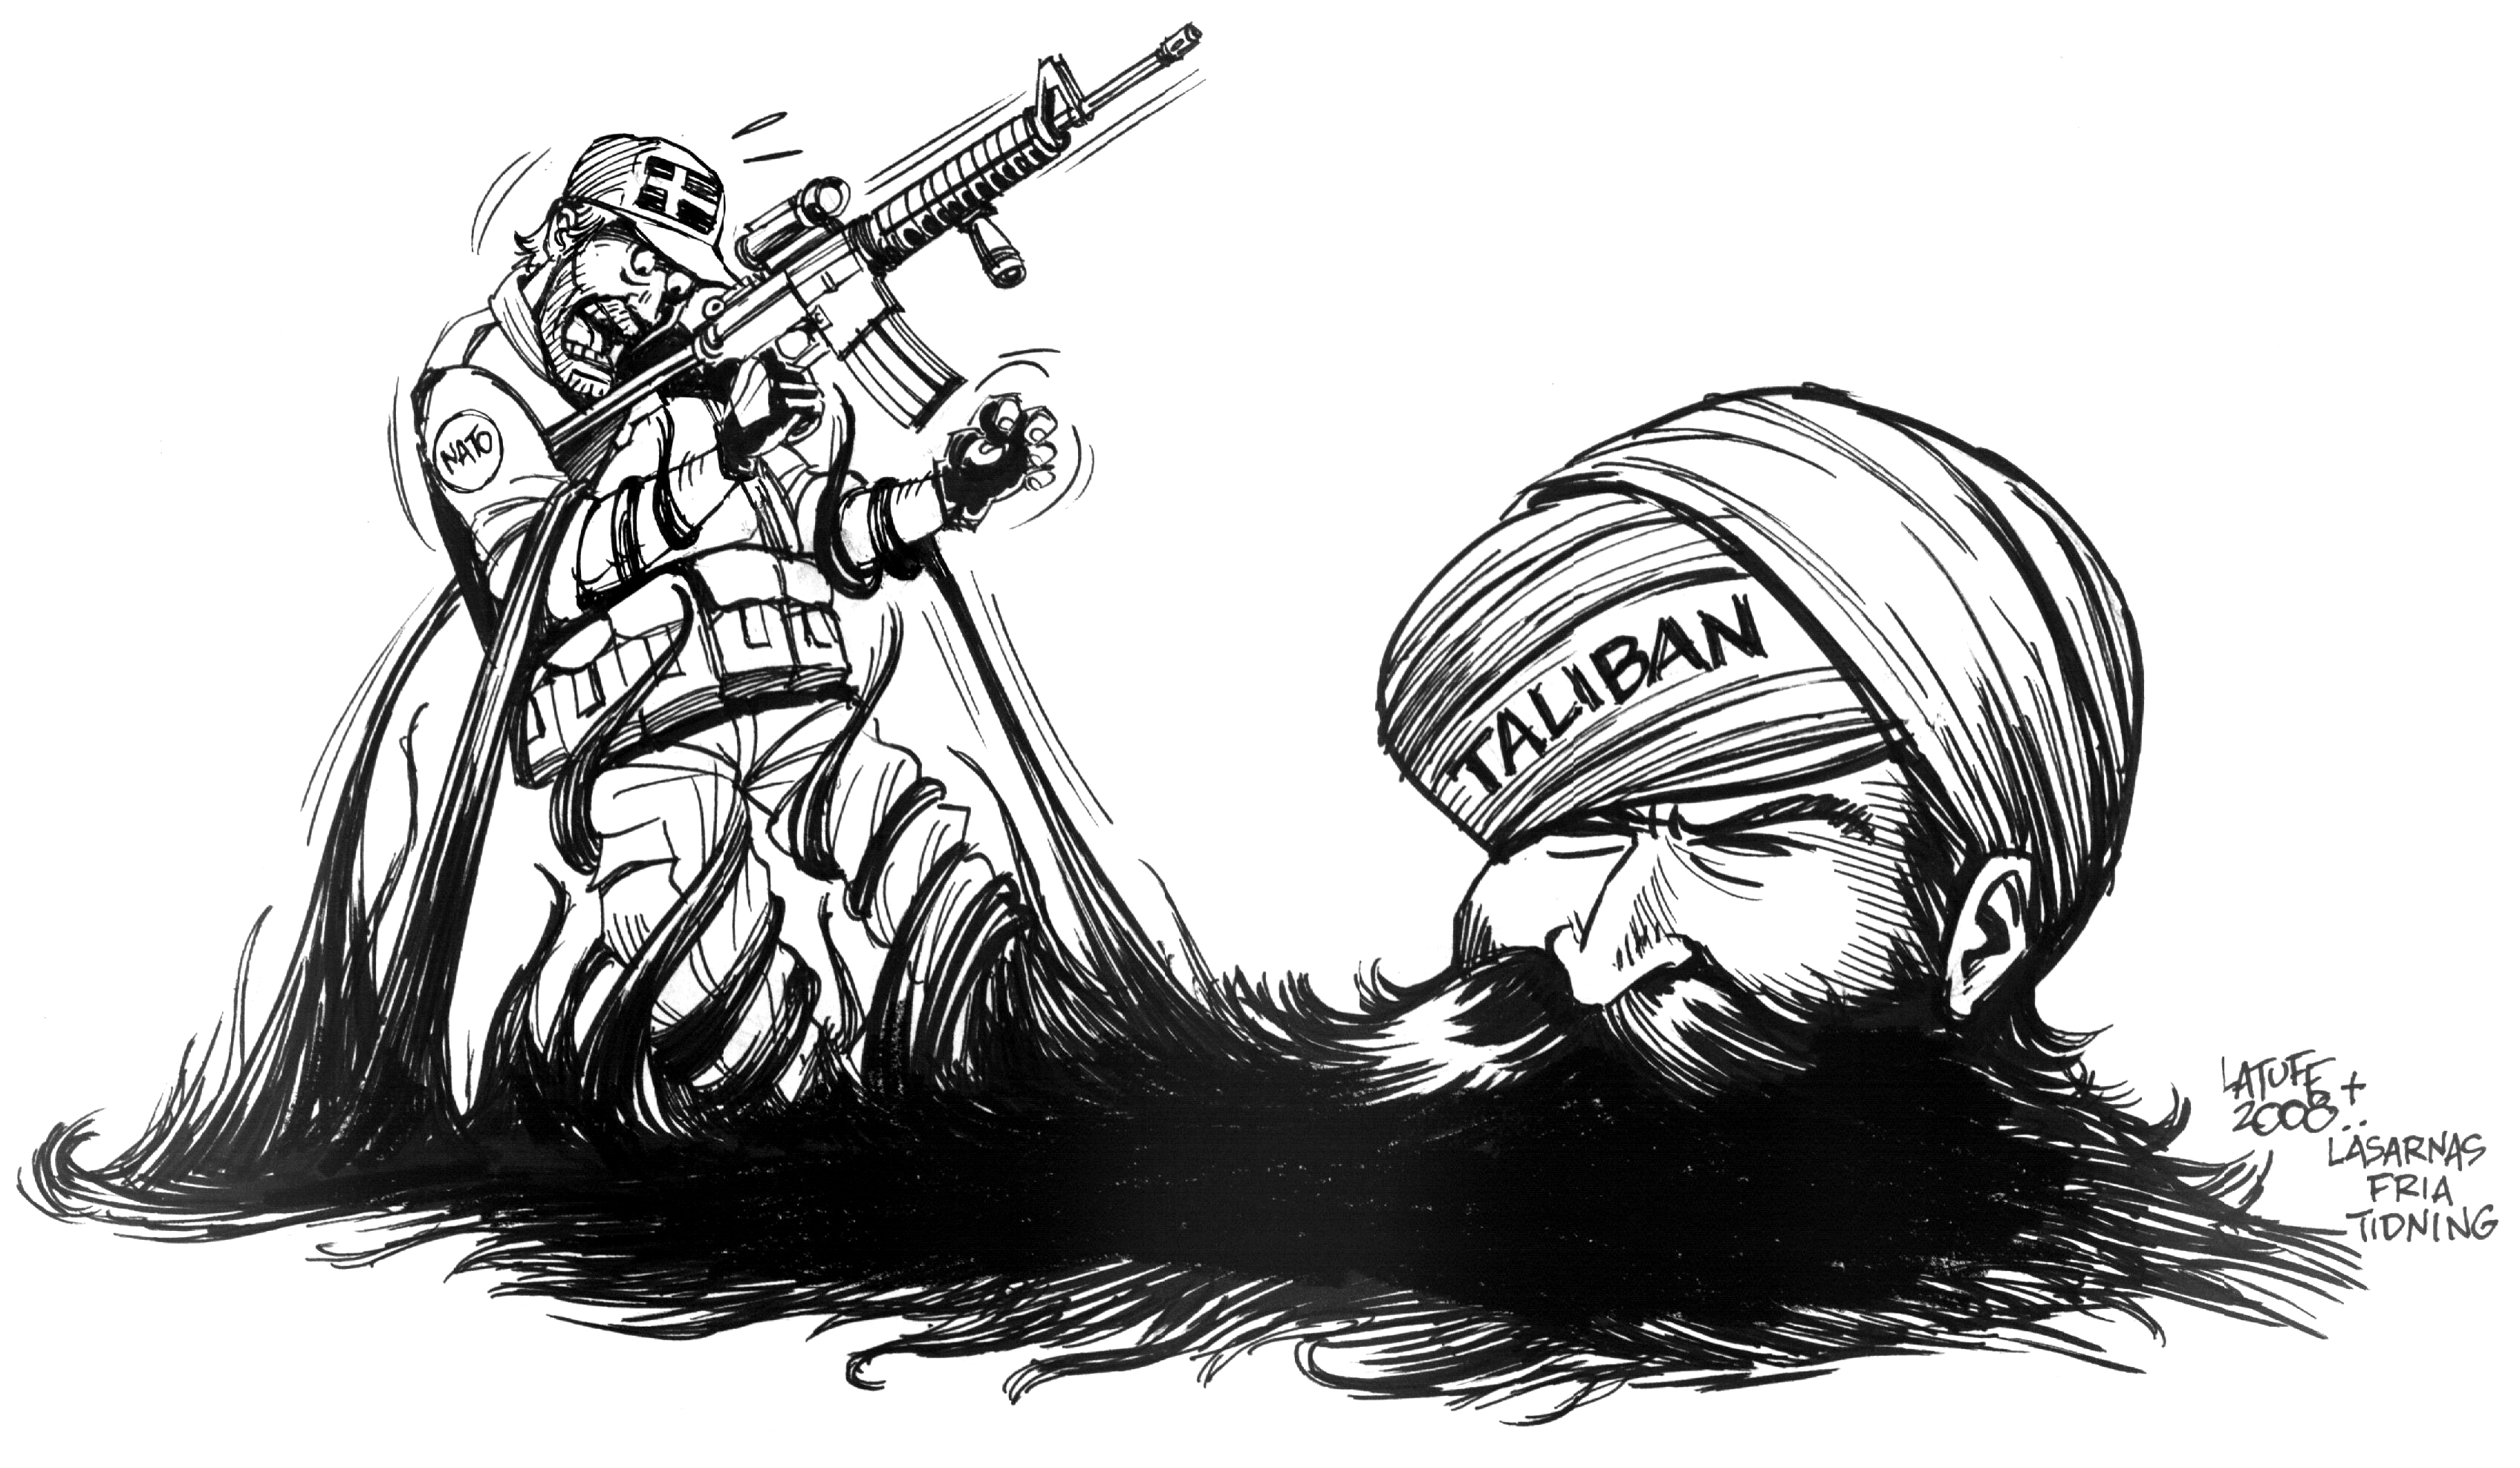 File:Taliban.jpg - Wikimedia Commons